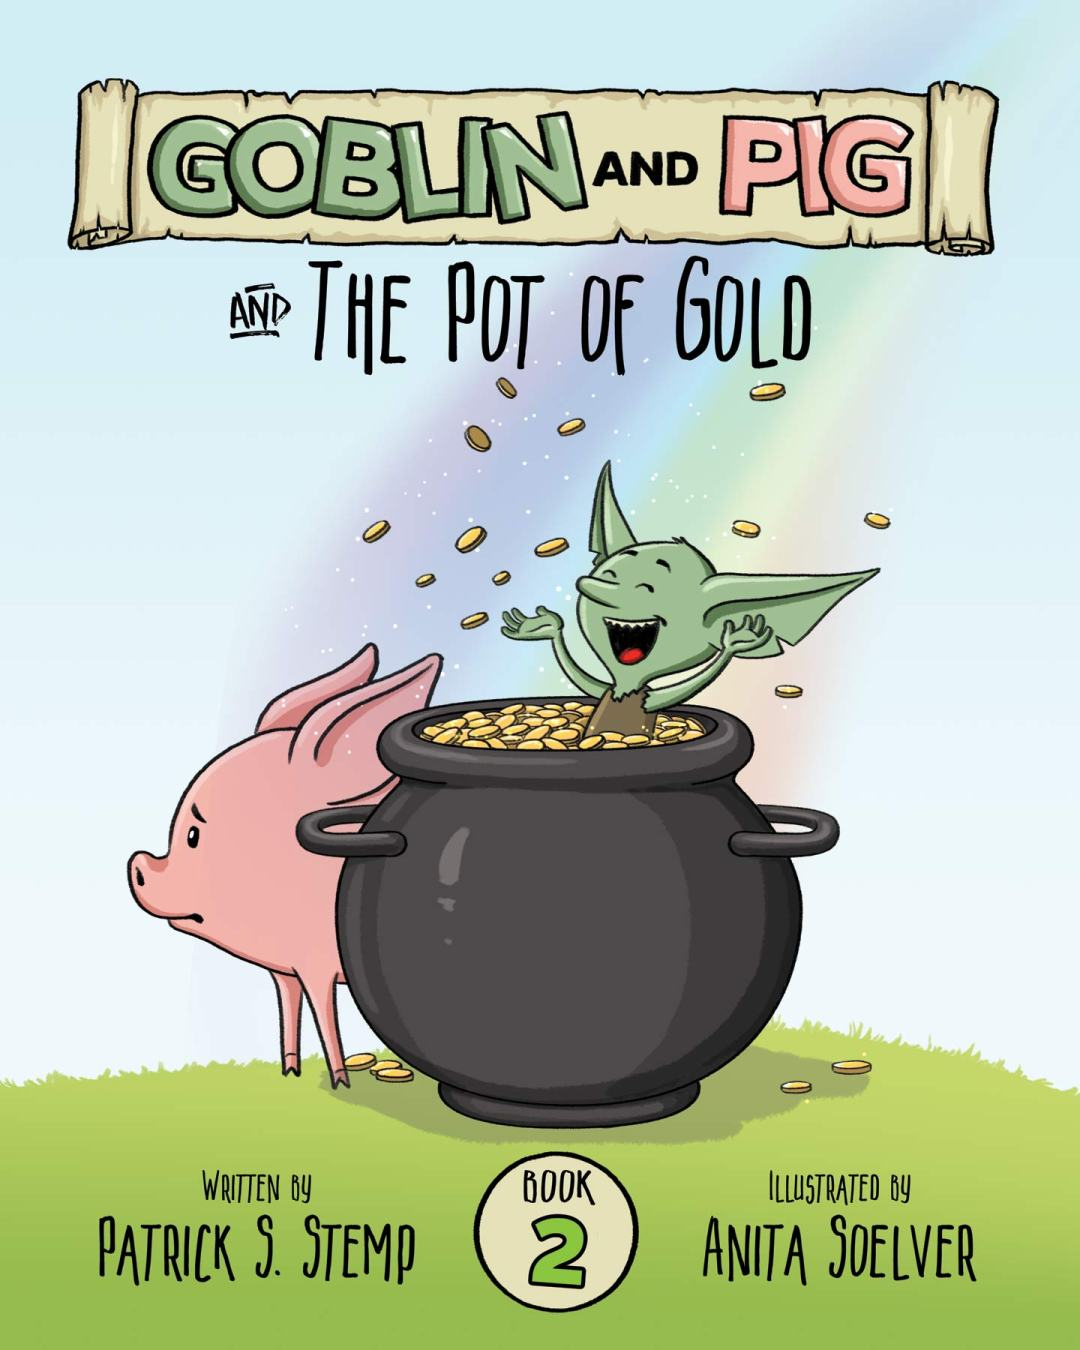 Goblin and Pig: The Pot of Gold by Patrick S. Stemp & Anita Soelver